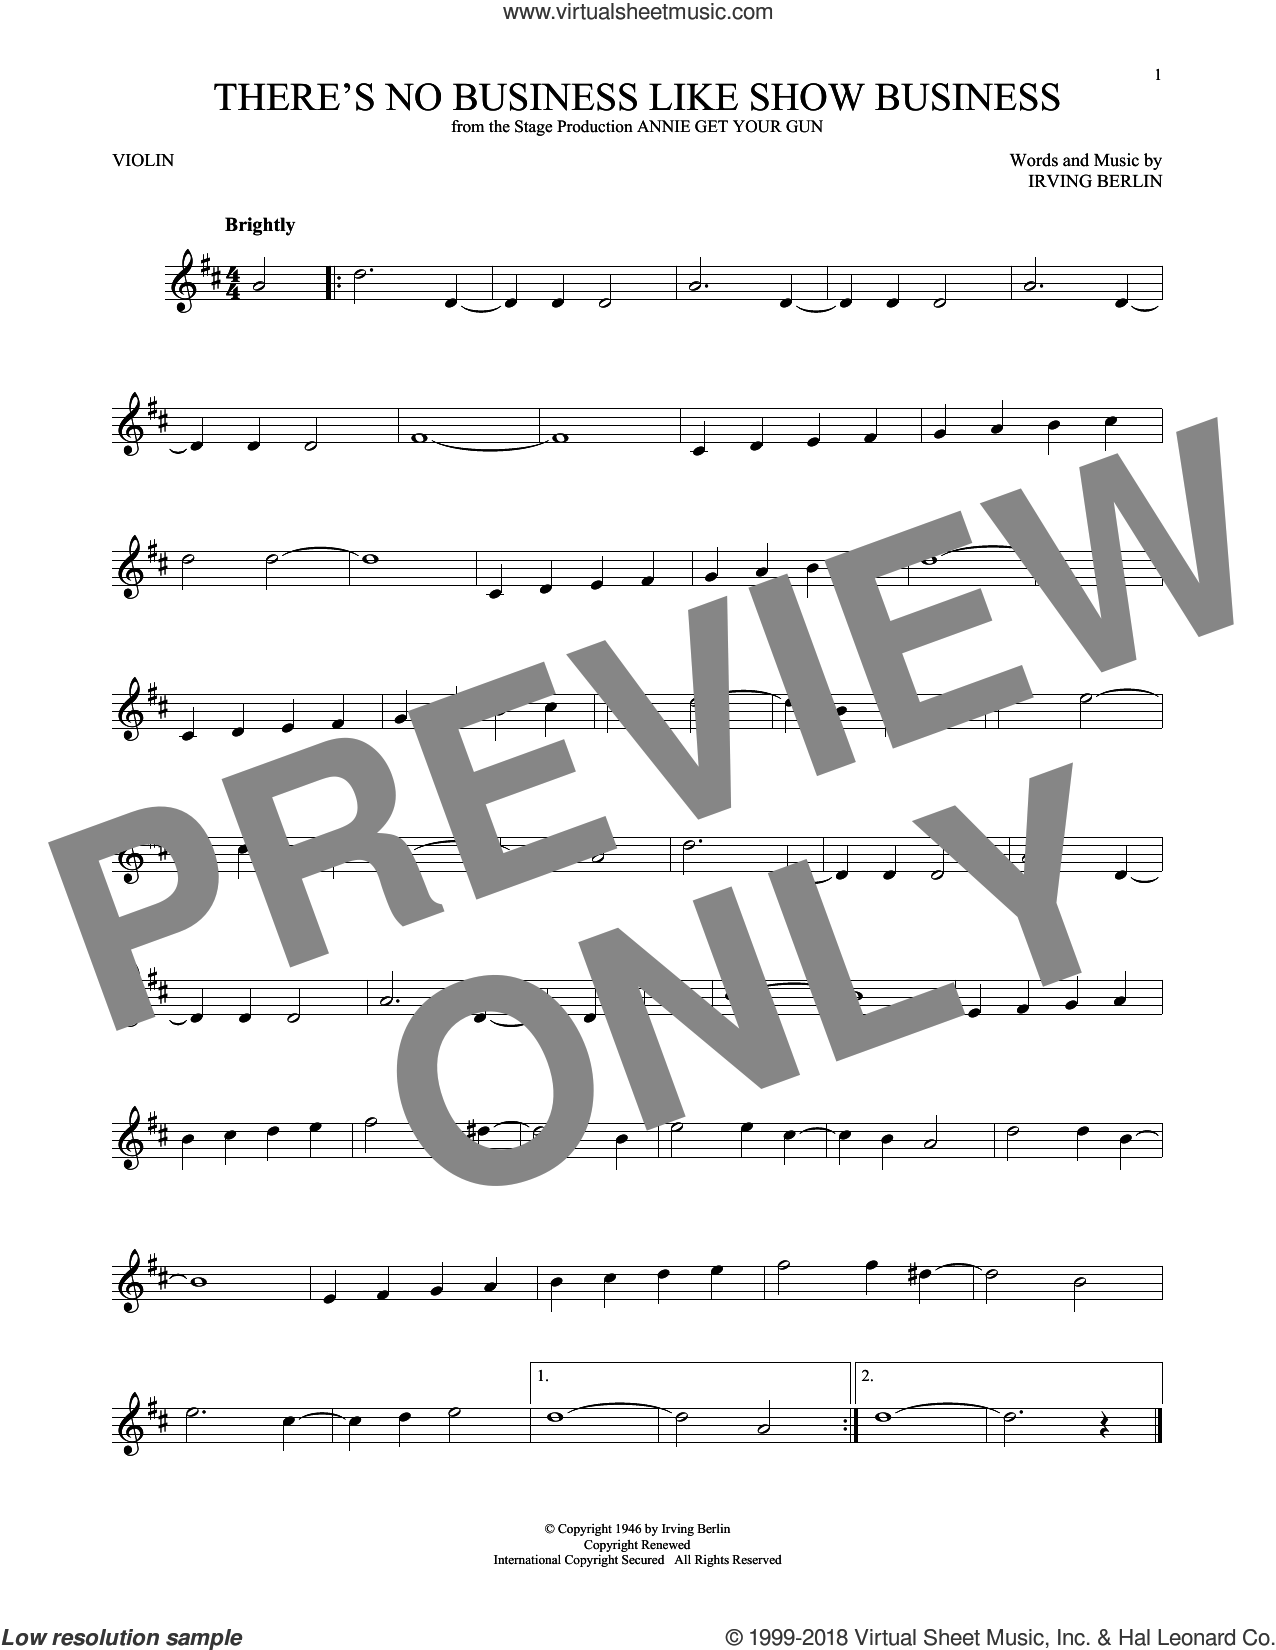 There's No Business Like Show Business sheet music for violin solo by Irving Berlin, intermediate skill level